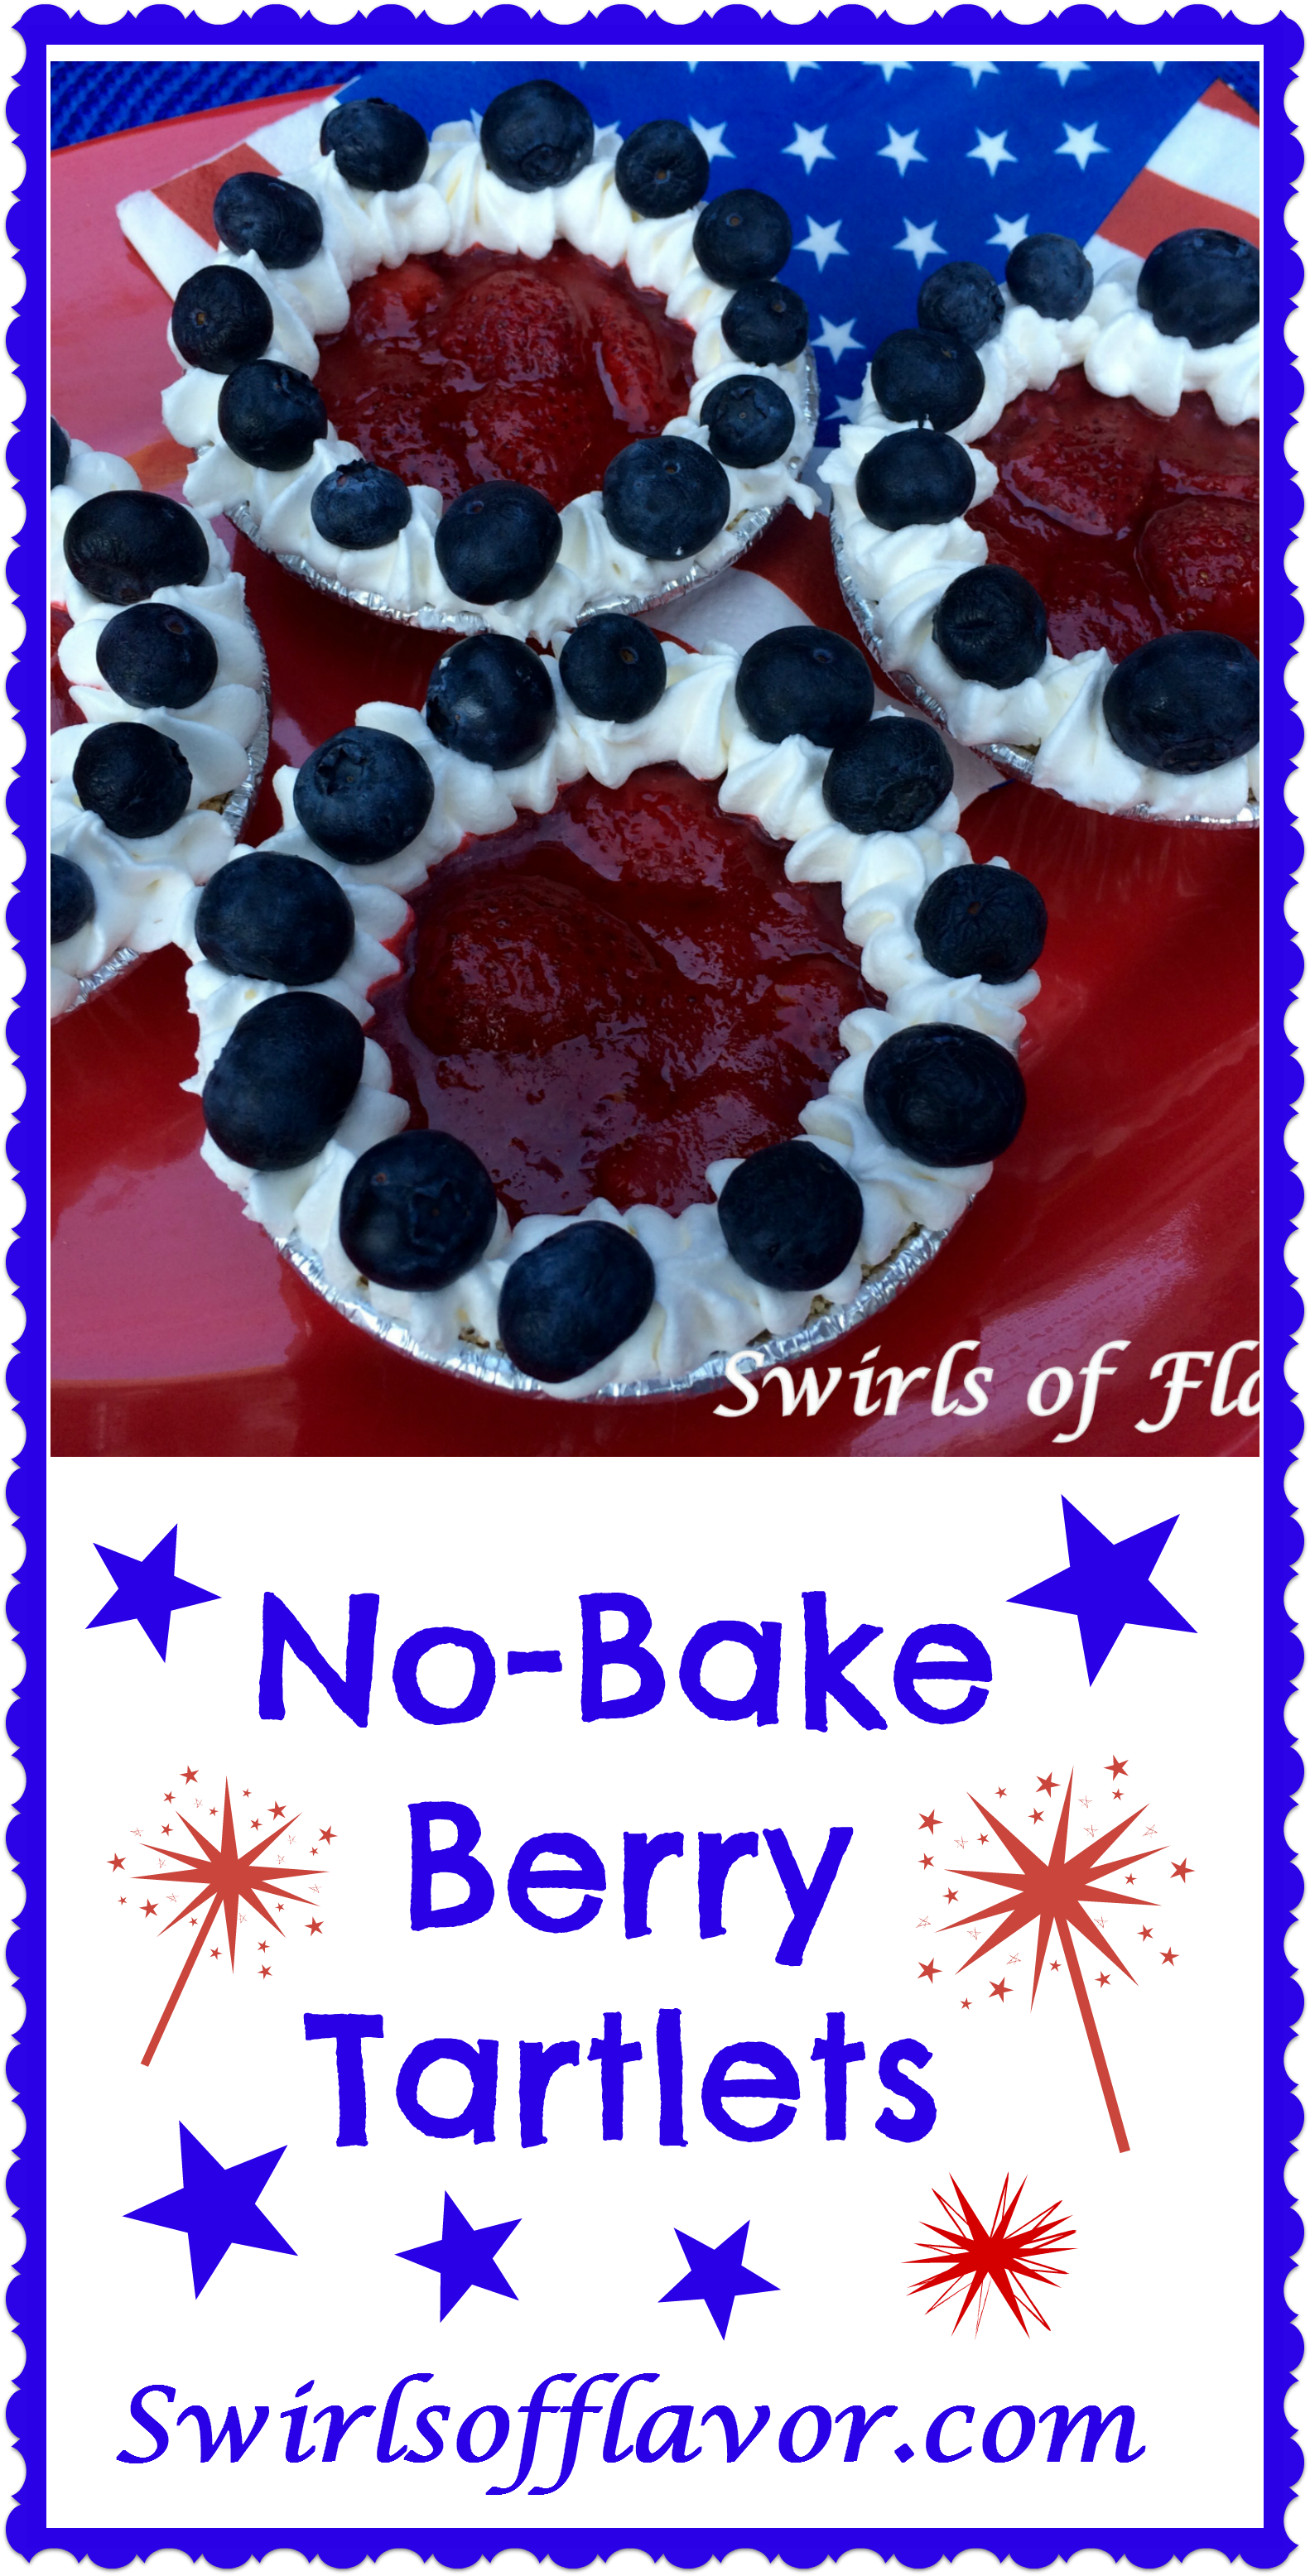 Festive and patriotic No-Bake Berry Tartlets are bursting with a citrus kissed strawberry filling and crowned with fresh blueberries. berries | no bake | dessert | easy recipe | summer | sweet | July 4th | Memorial Day |#swirlsofflavor